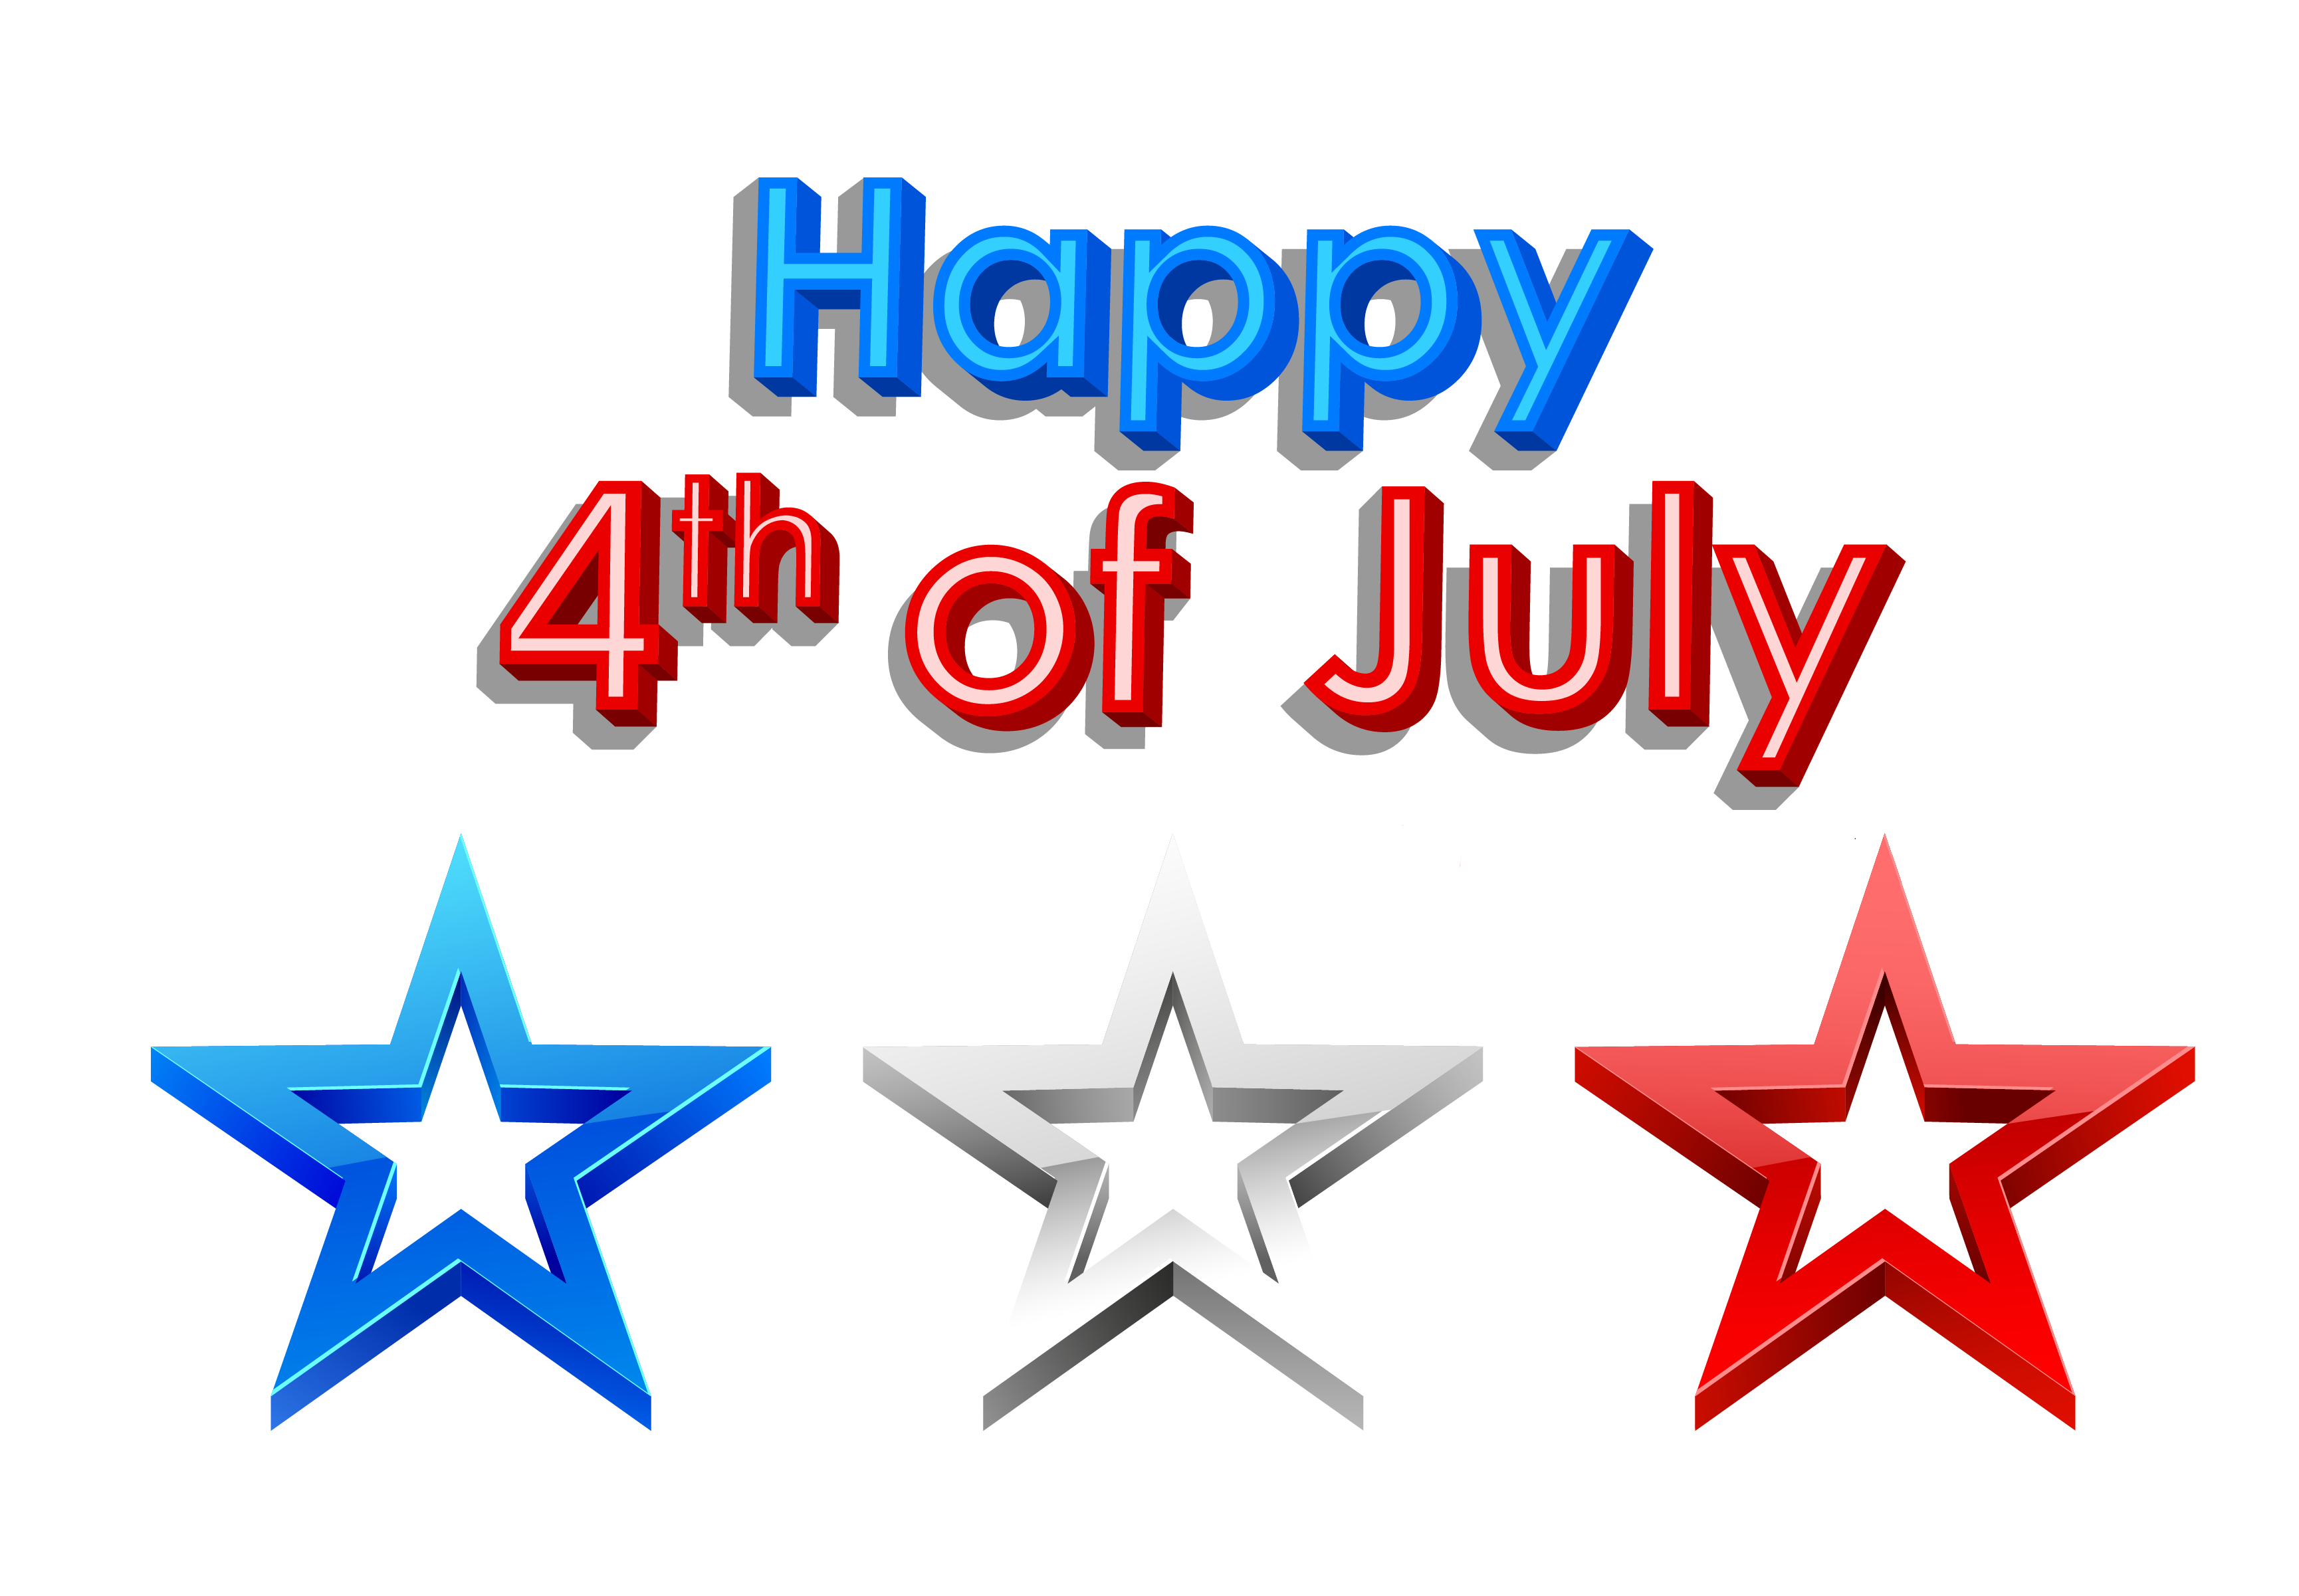 4th July Full HD Wallpaper and Background 3459x2402